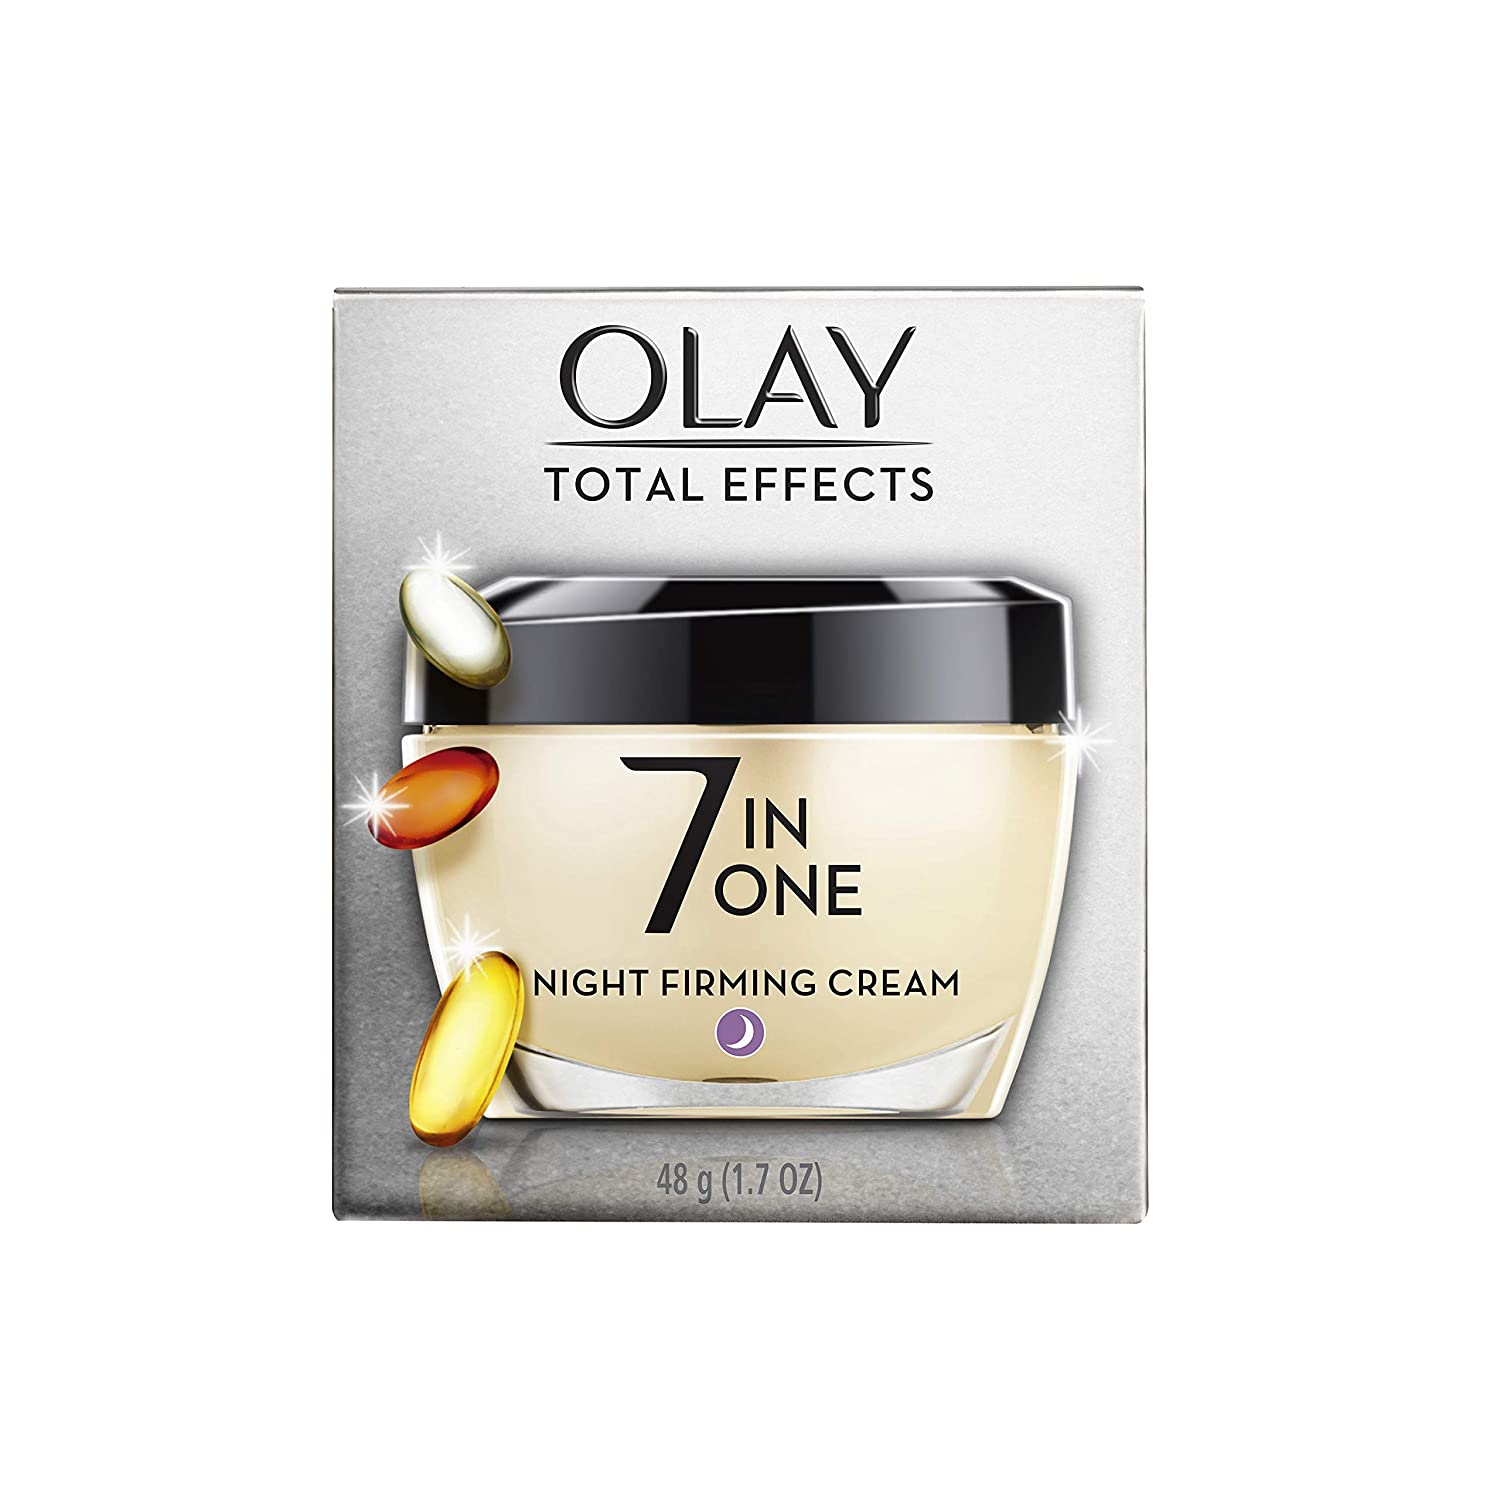 Olay Total Effects 7 in 1 Night Firming Cream